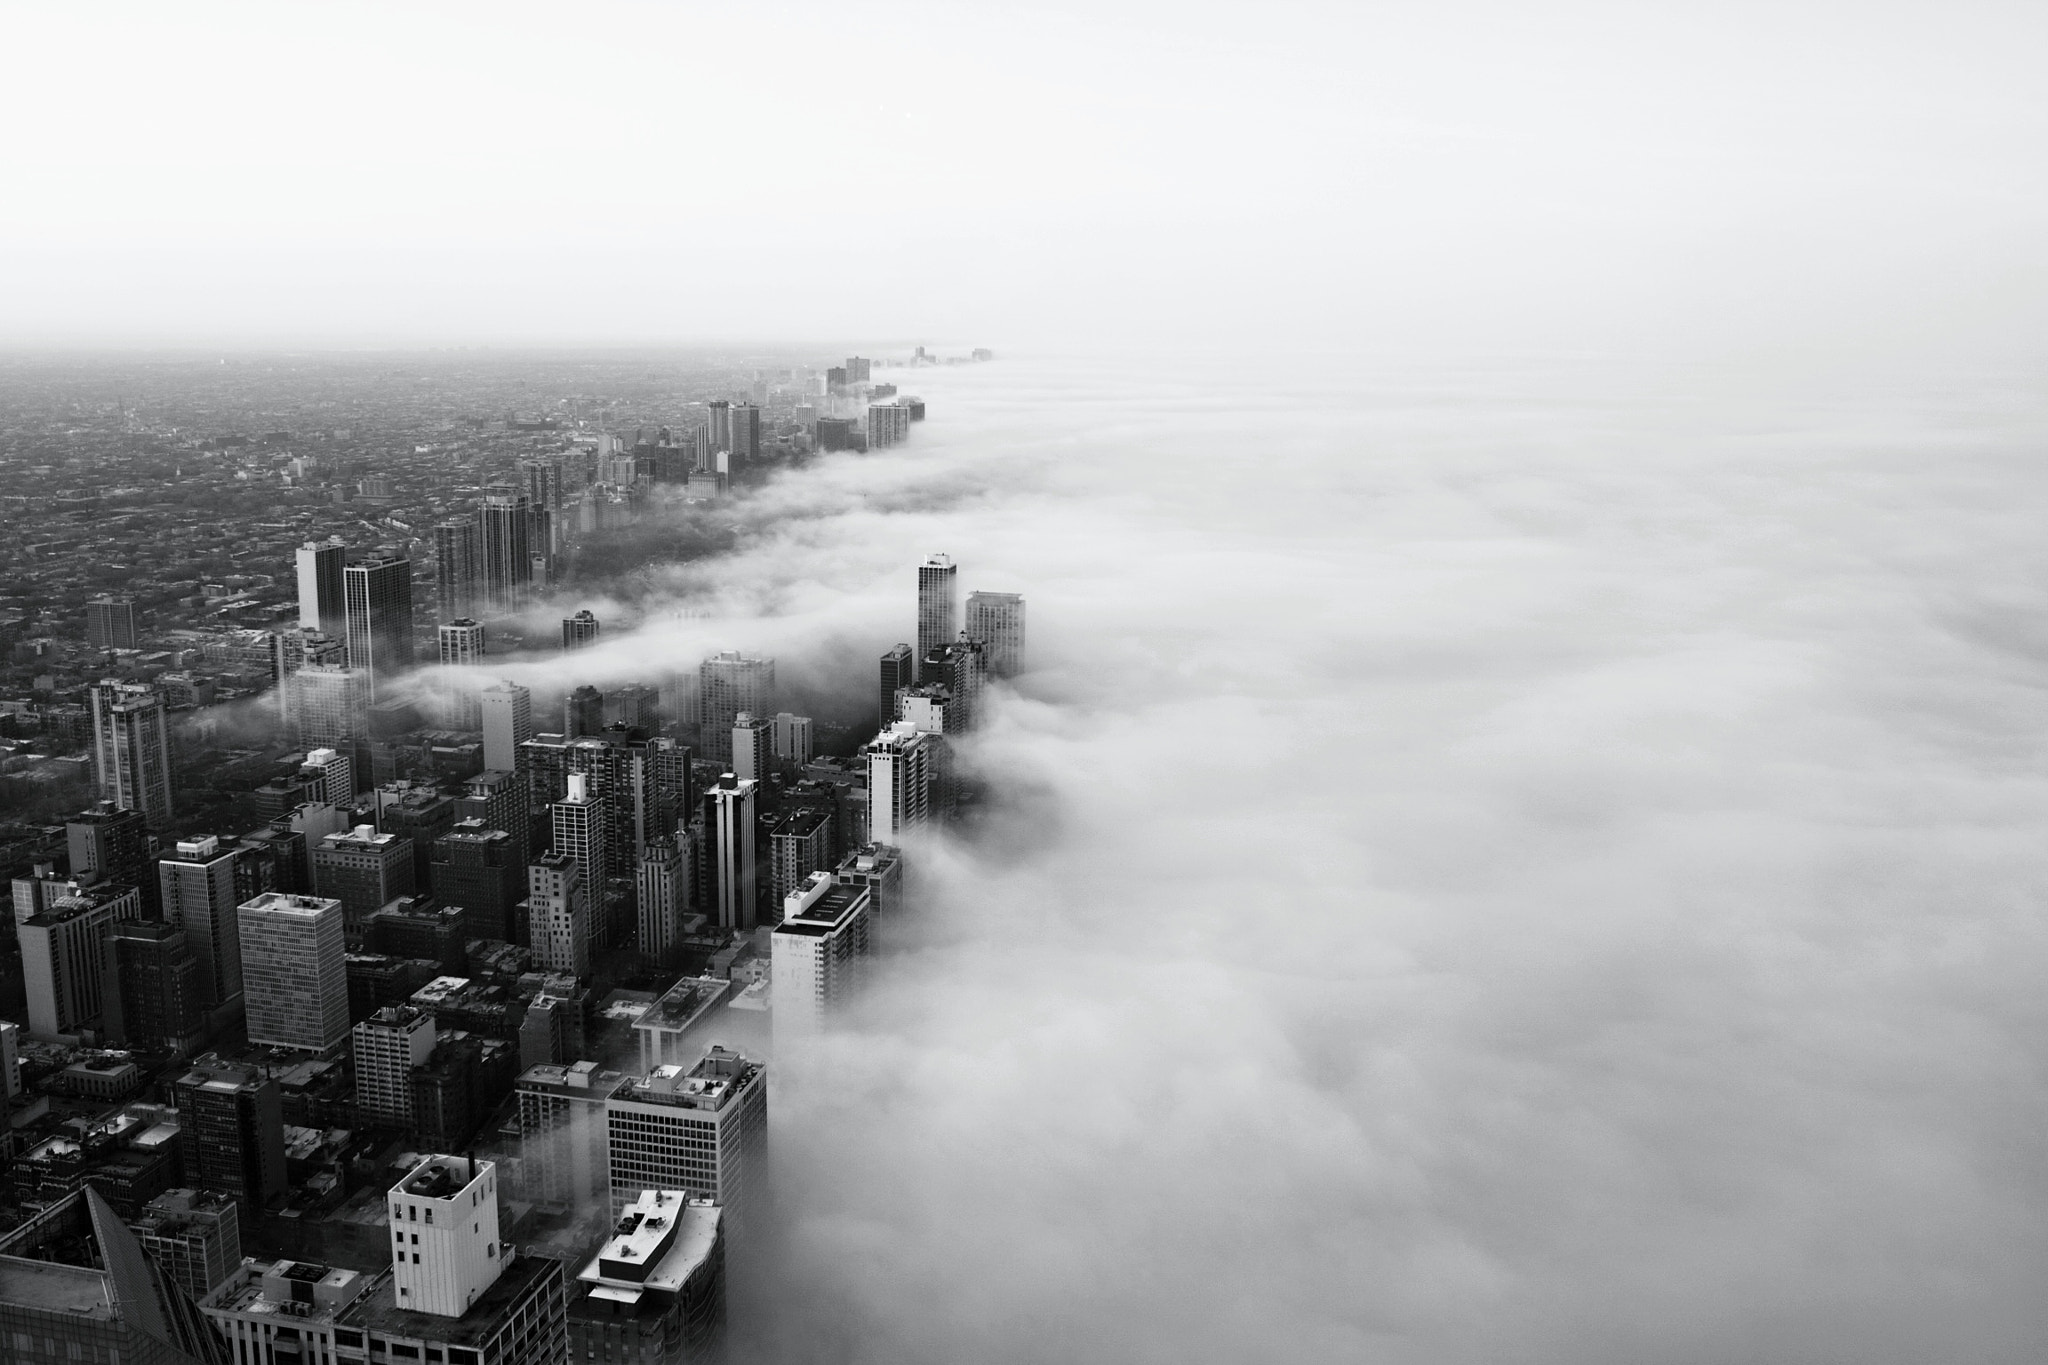 Photograph Fog Sweeps The City - Black and White by Noah Siano on 500px